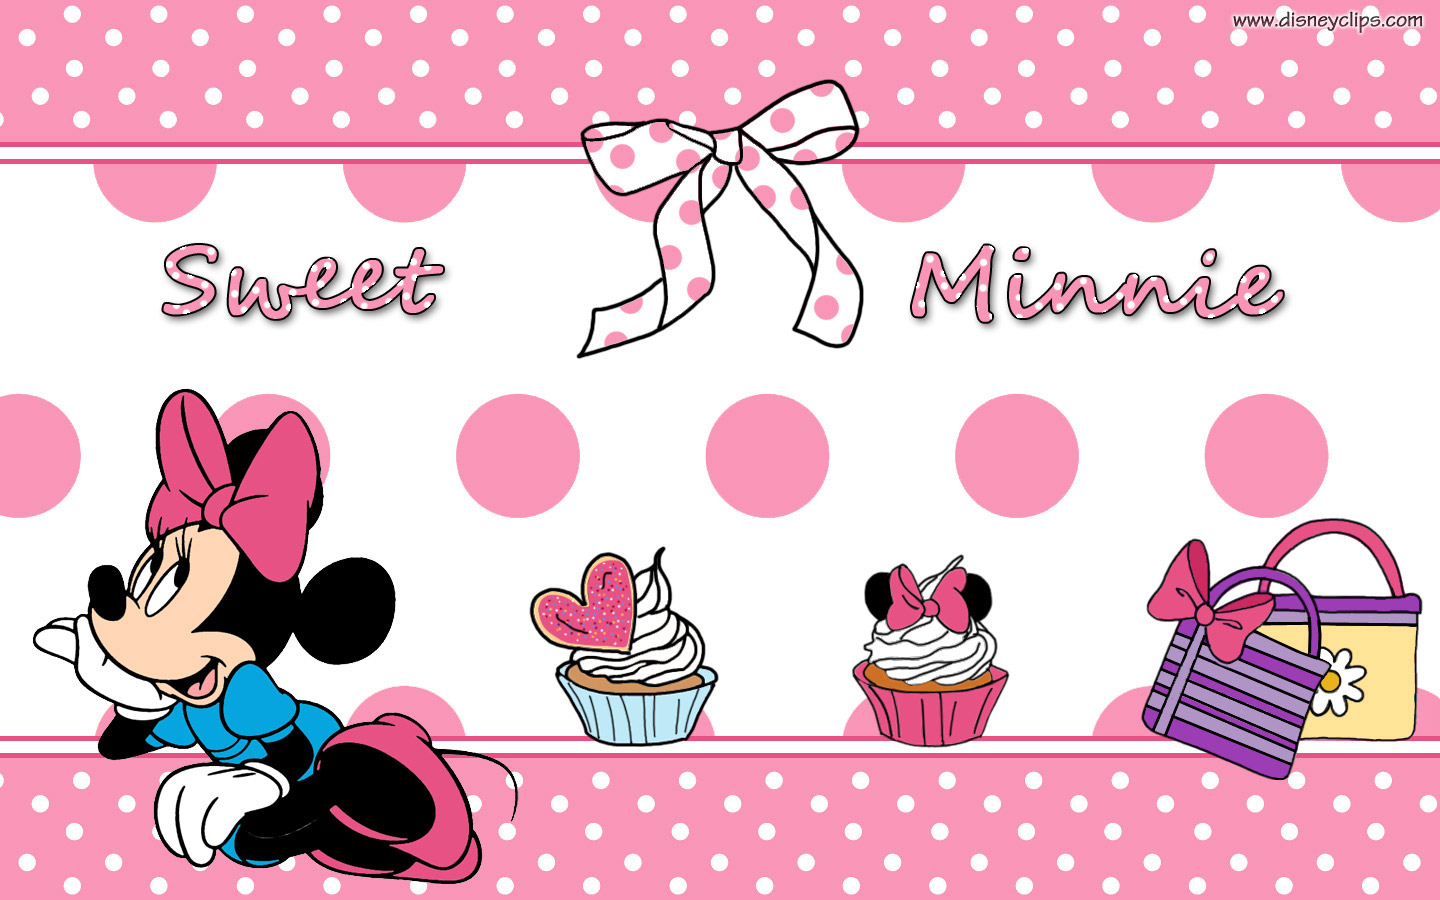 Free Vintage Minnie And Mickey Mouse Wallpaper